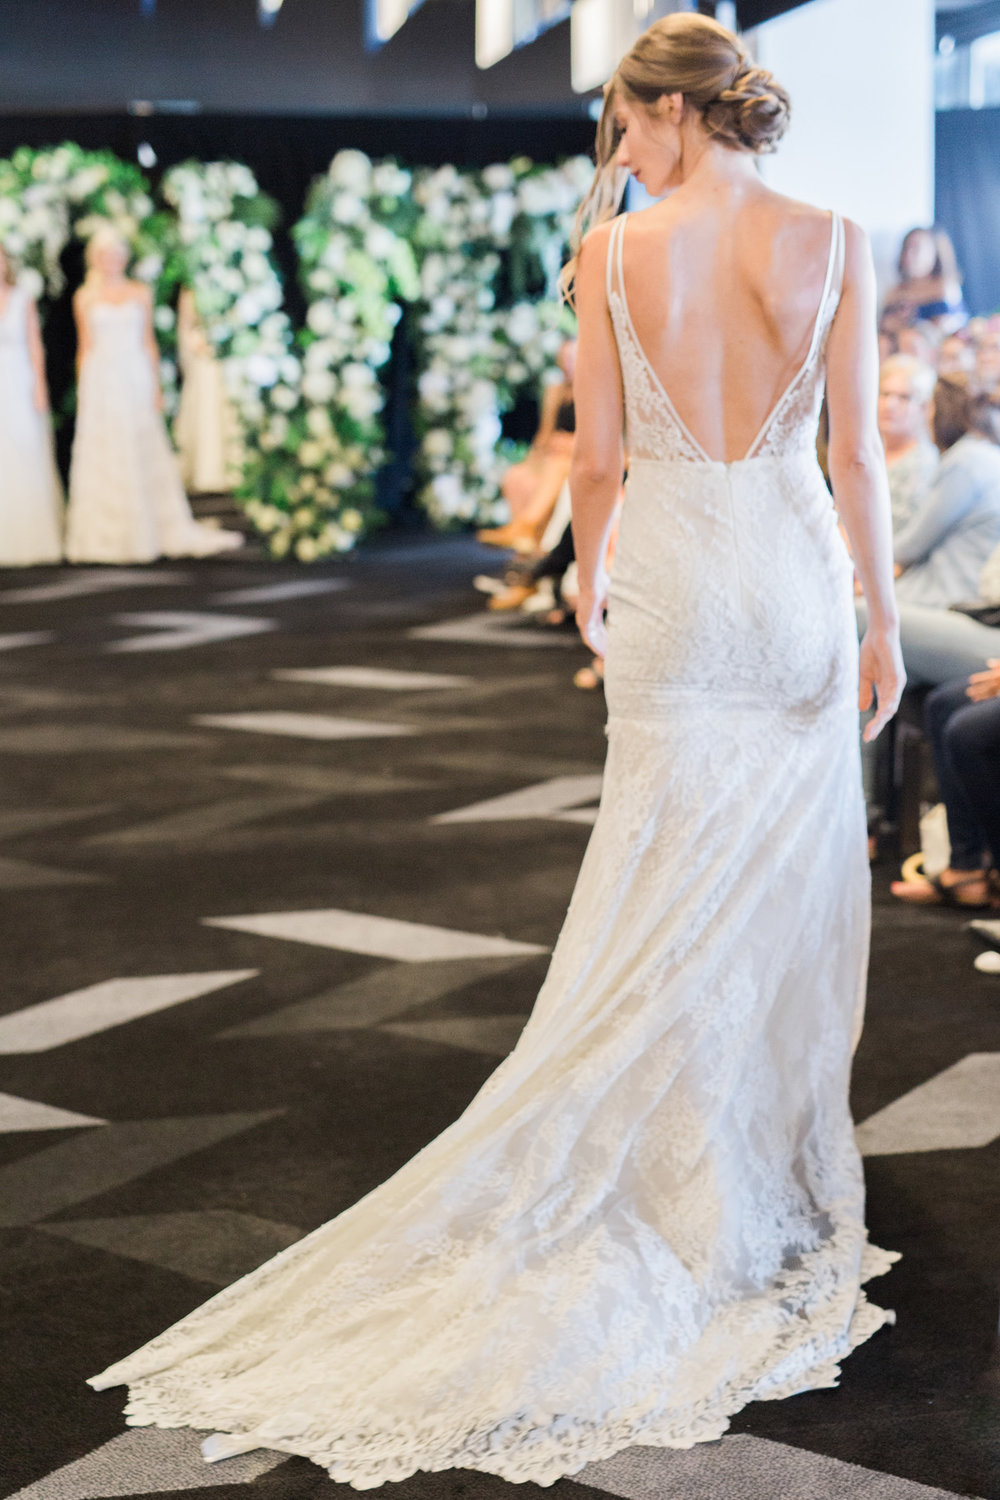 Love-Wedding-Festival-Sydney-Wedding-Gown-Angela-Osagie-22.jpg